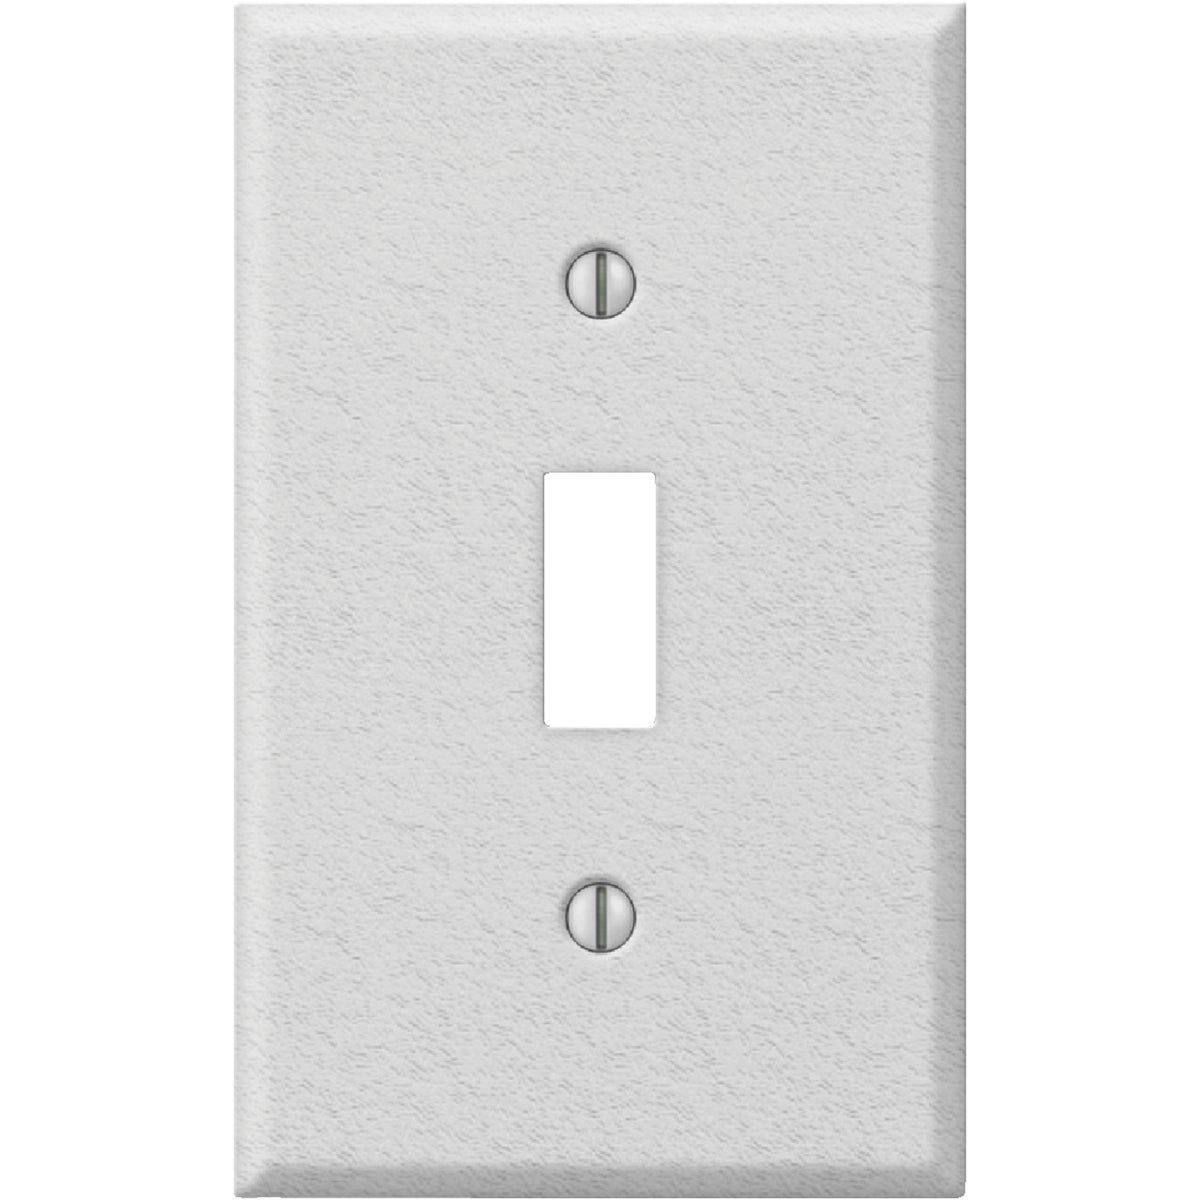 WHT SWITCH WALL PLATE - 8WK101 by Jackson Deerfield Mf